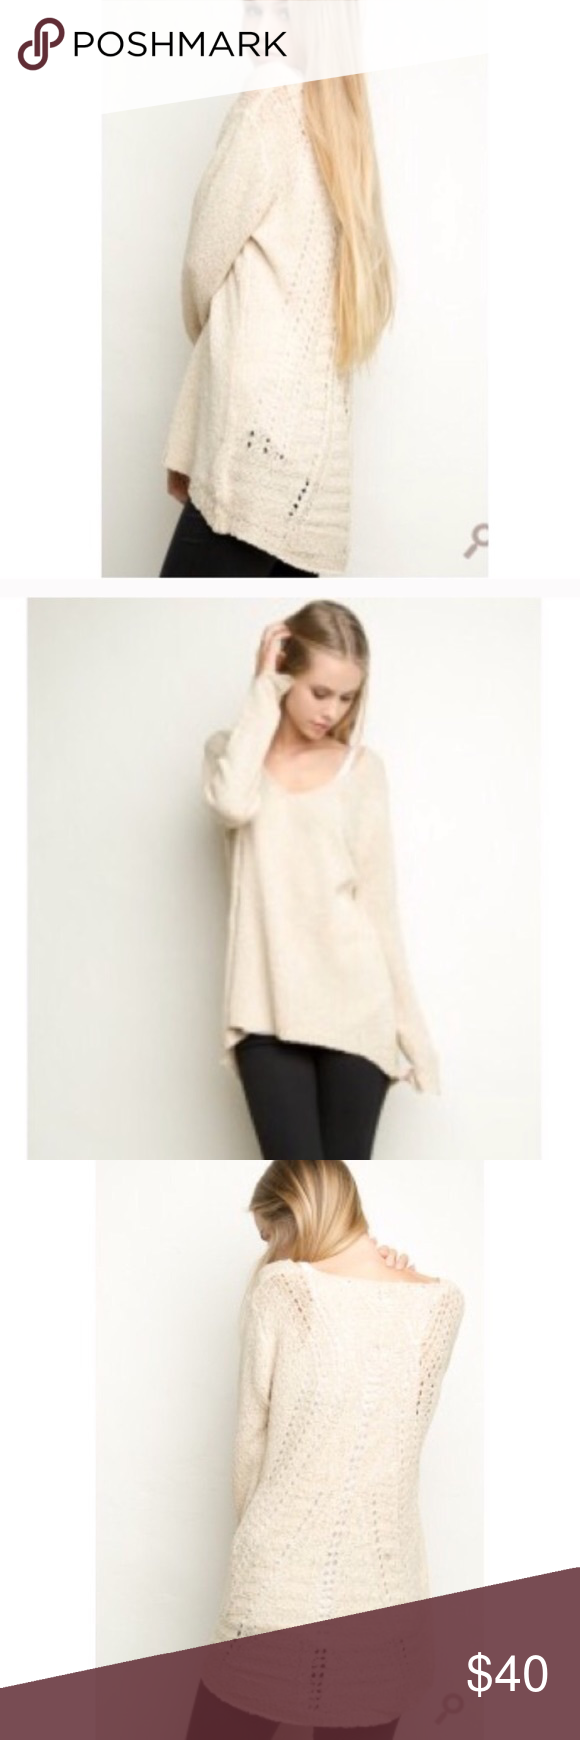 740f8b9c3d289 Brandy Melville Oversized V-Neck Cream Sweater Beautiful cream sweater just  a little too big for me